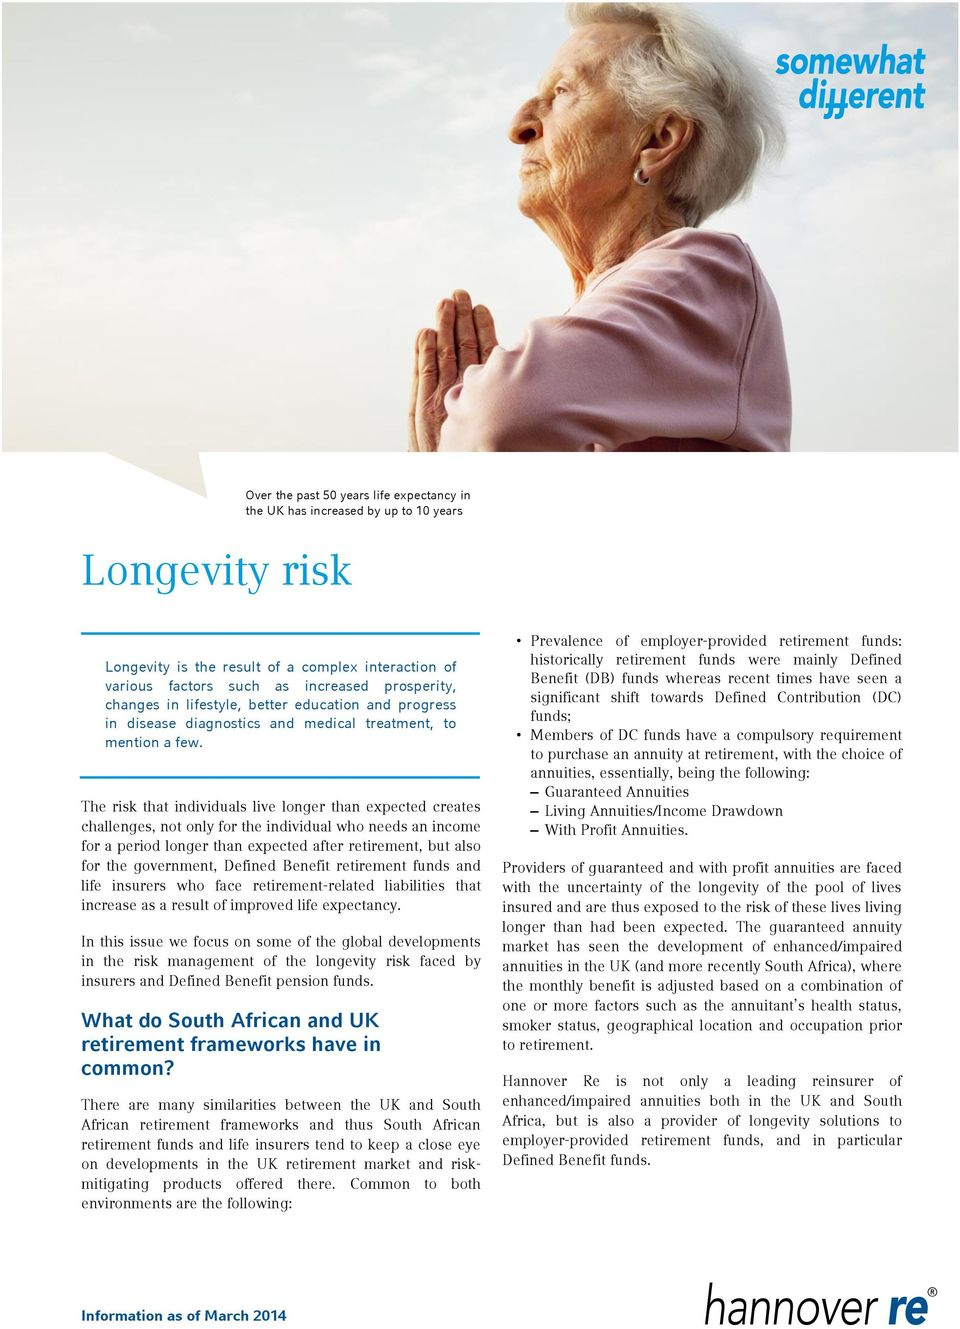 The risk that individuals live longer than expected creates challenges, not only for the individual who needs an income for a period longer than expected after retirement, but also for the